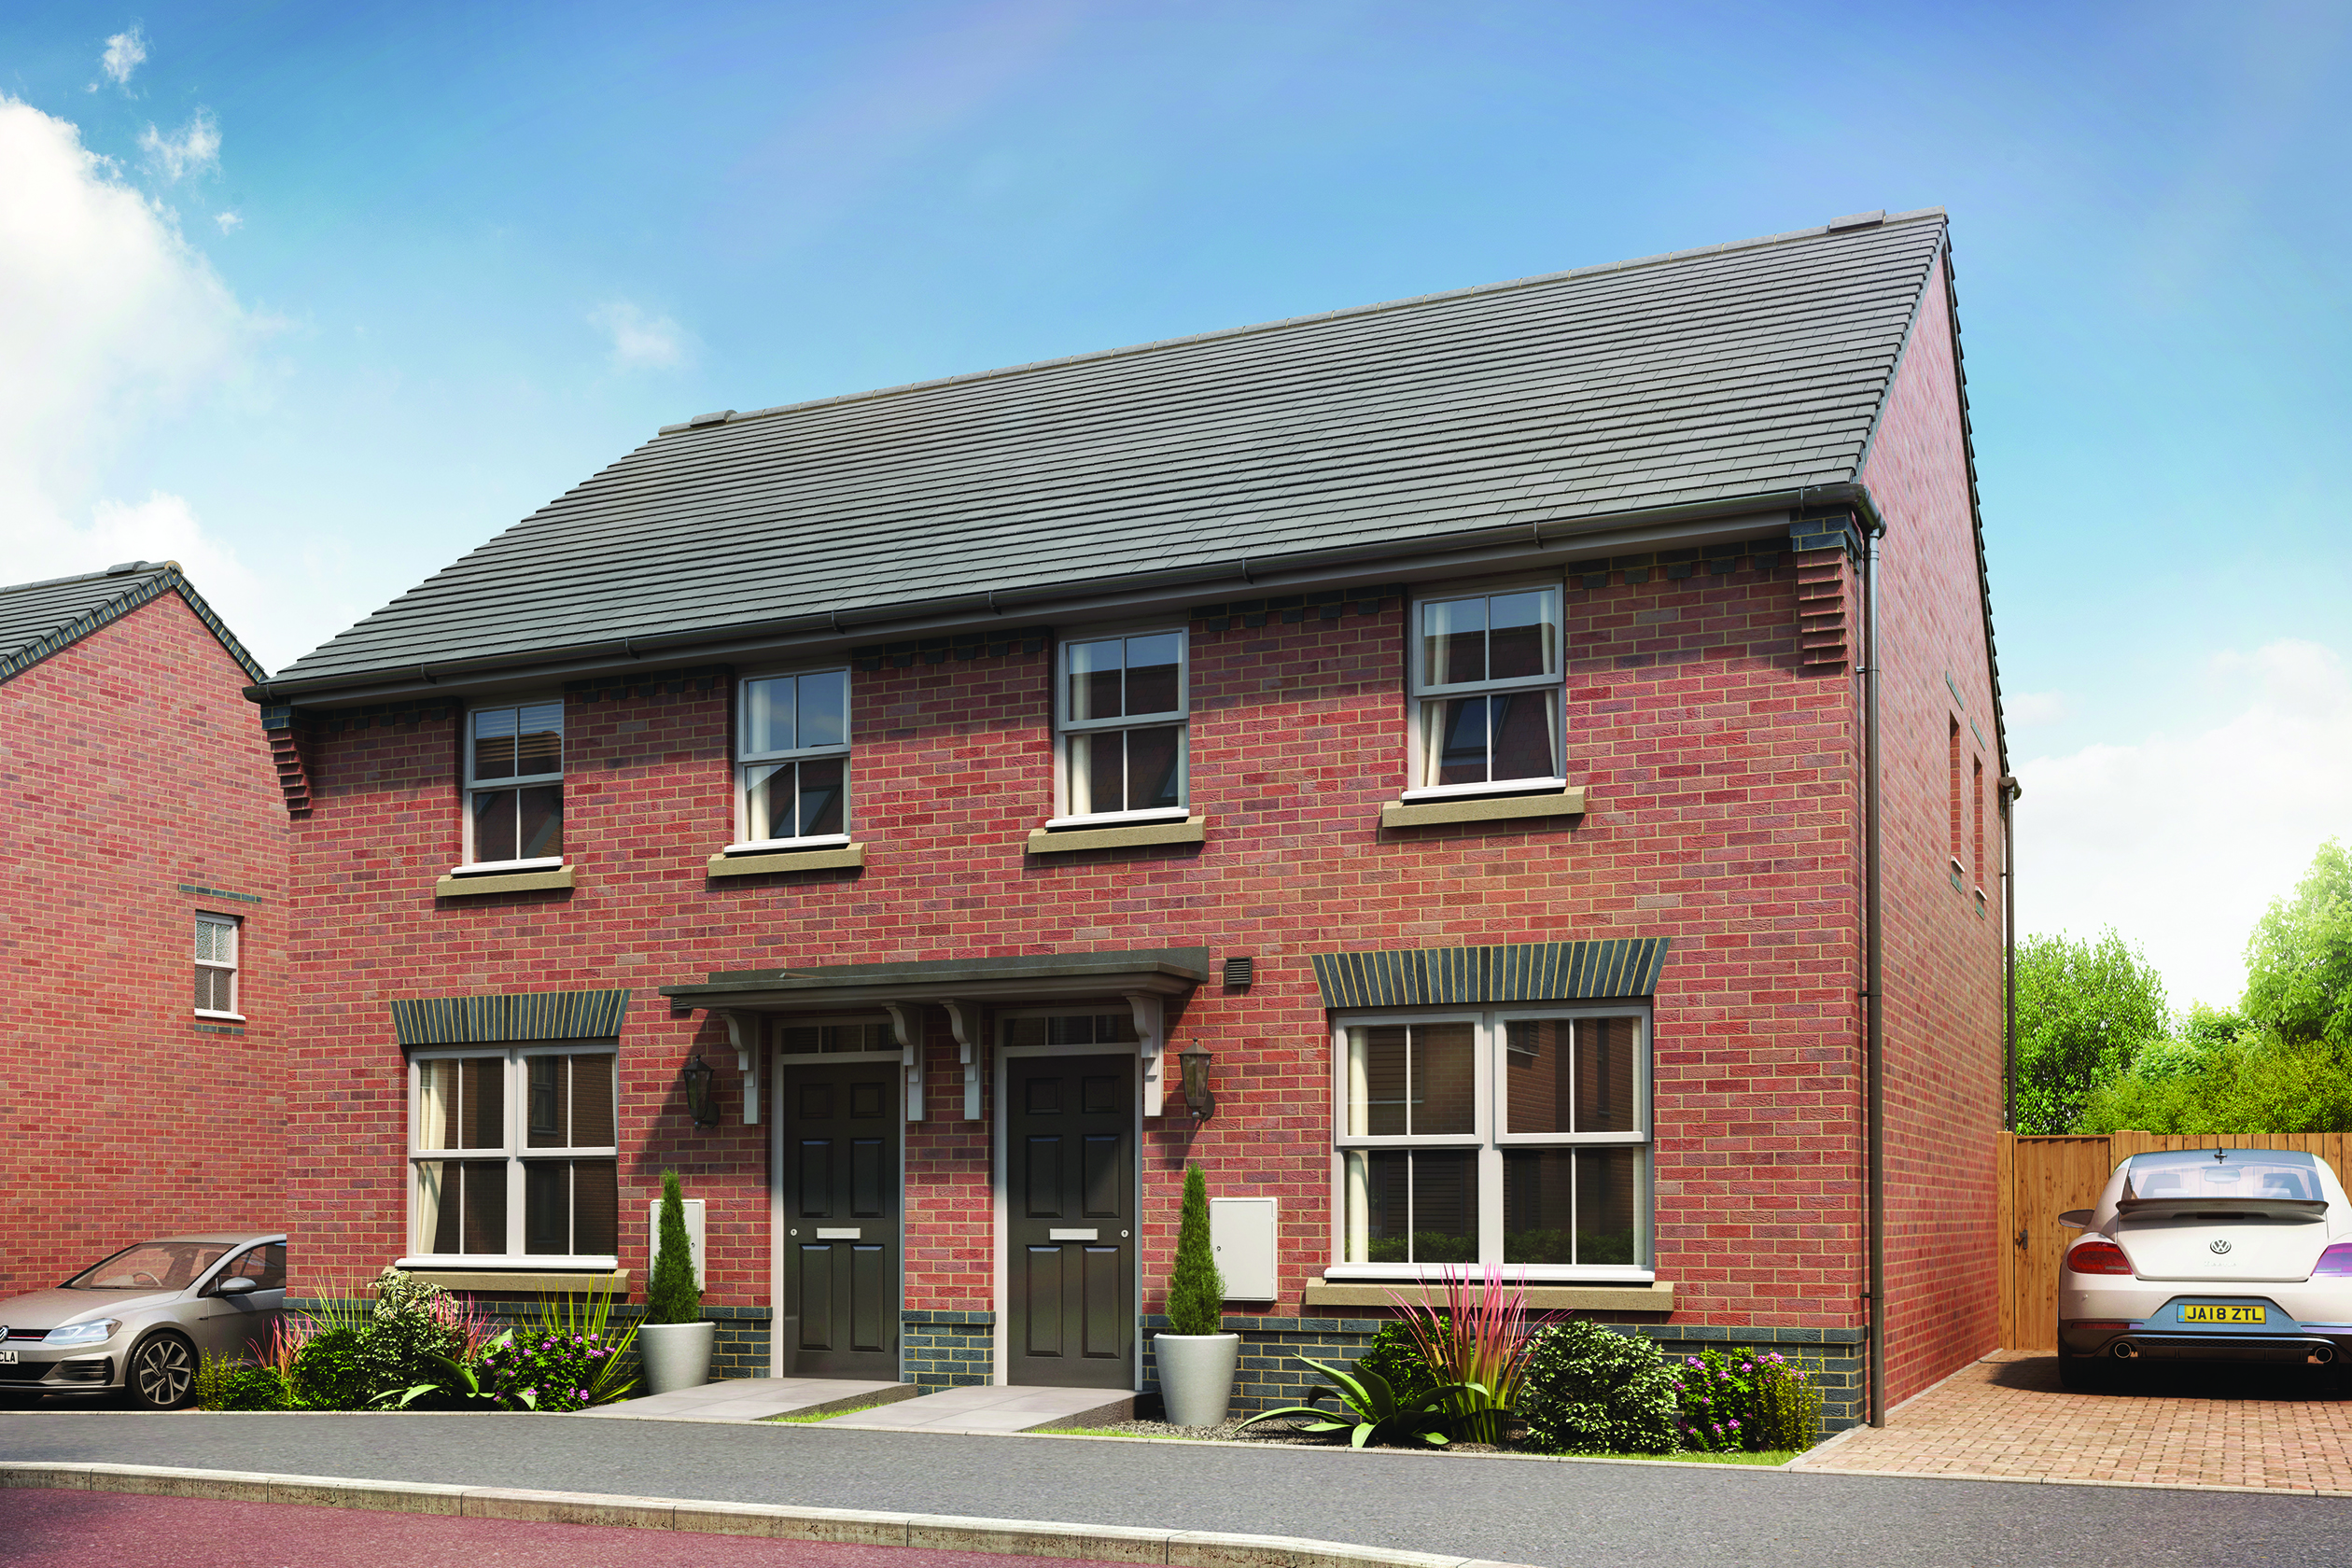 CGI of the outside view of the Archford 3 bedroom semi-detached home